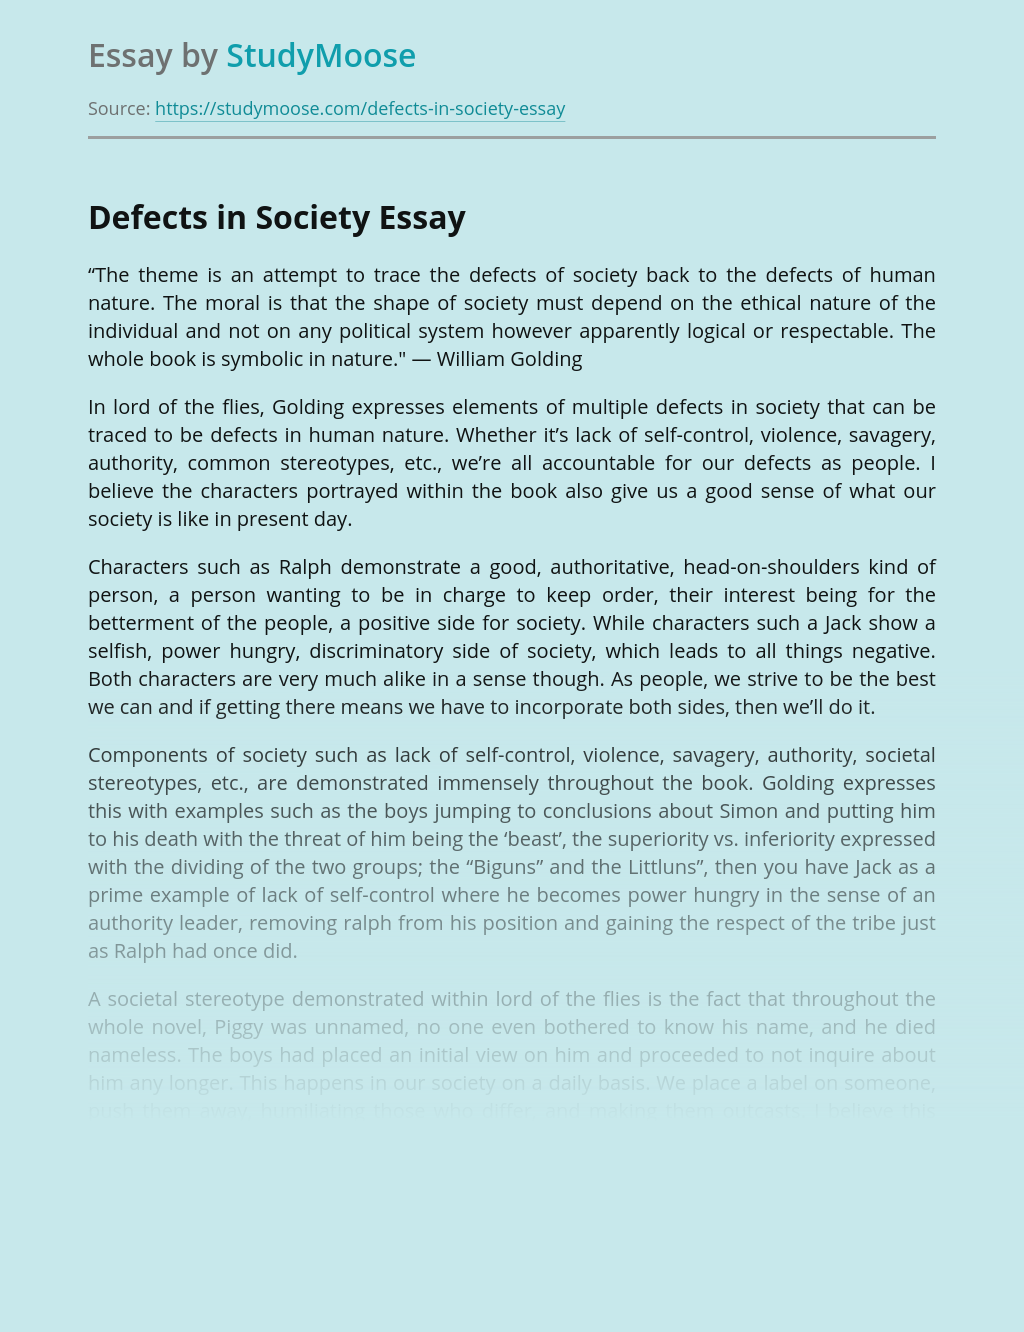 Defects in Society